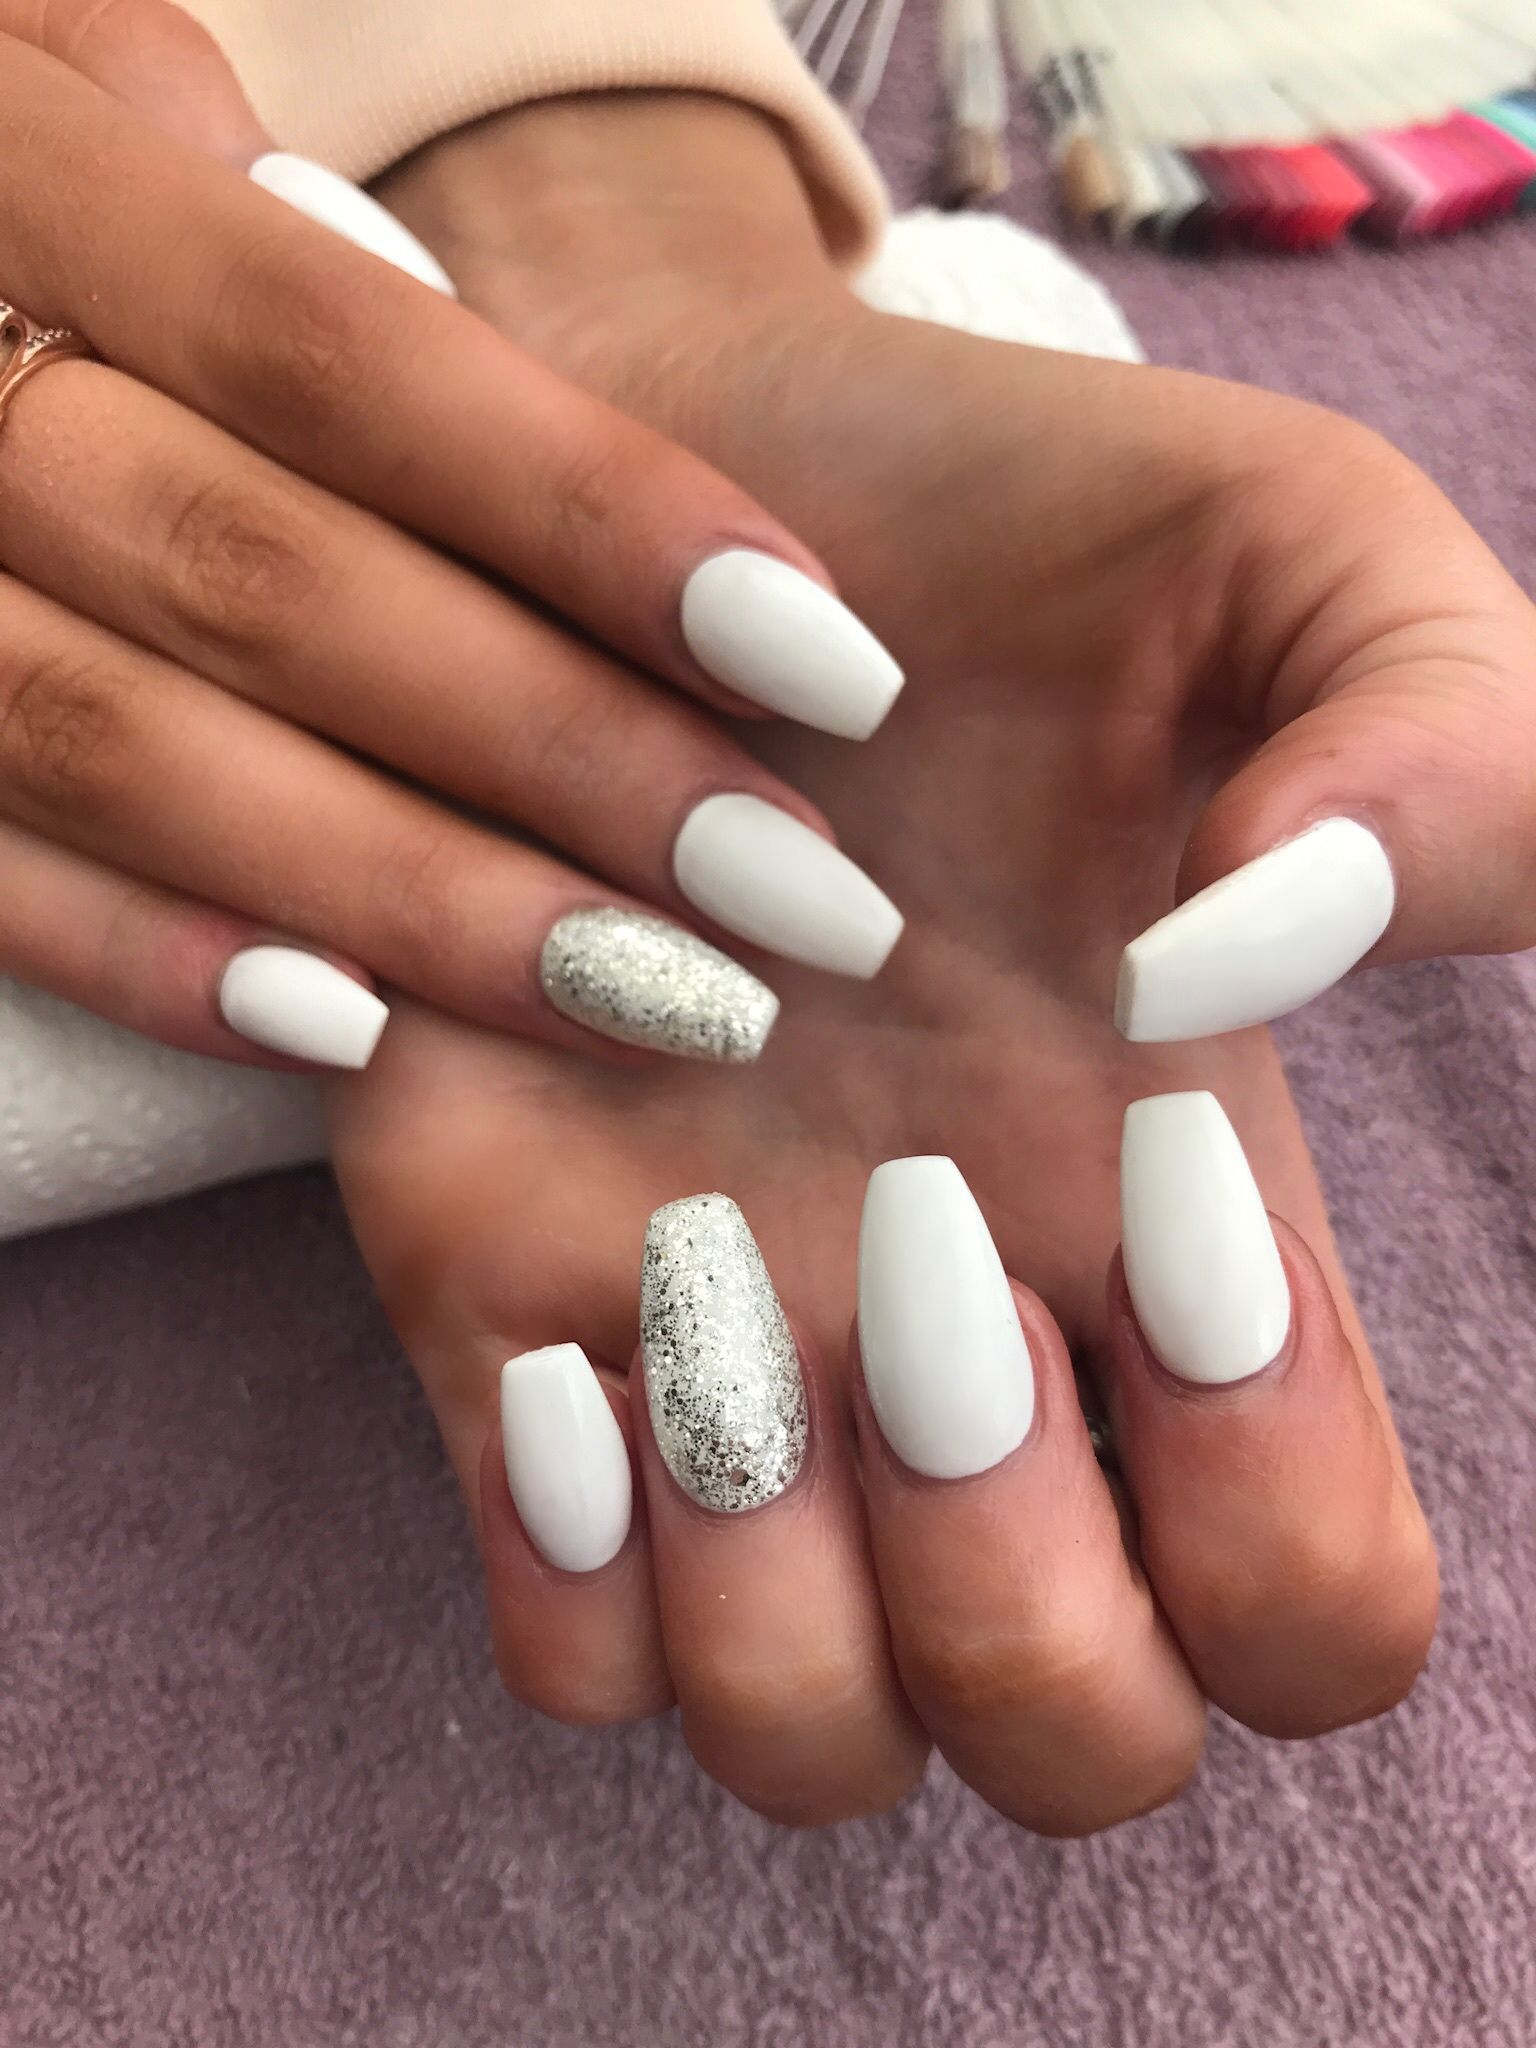 Acrylic Nails With Flowers: White Coffin Shaped Acrylic Nails With Silver Glitter